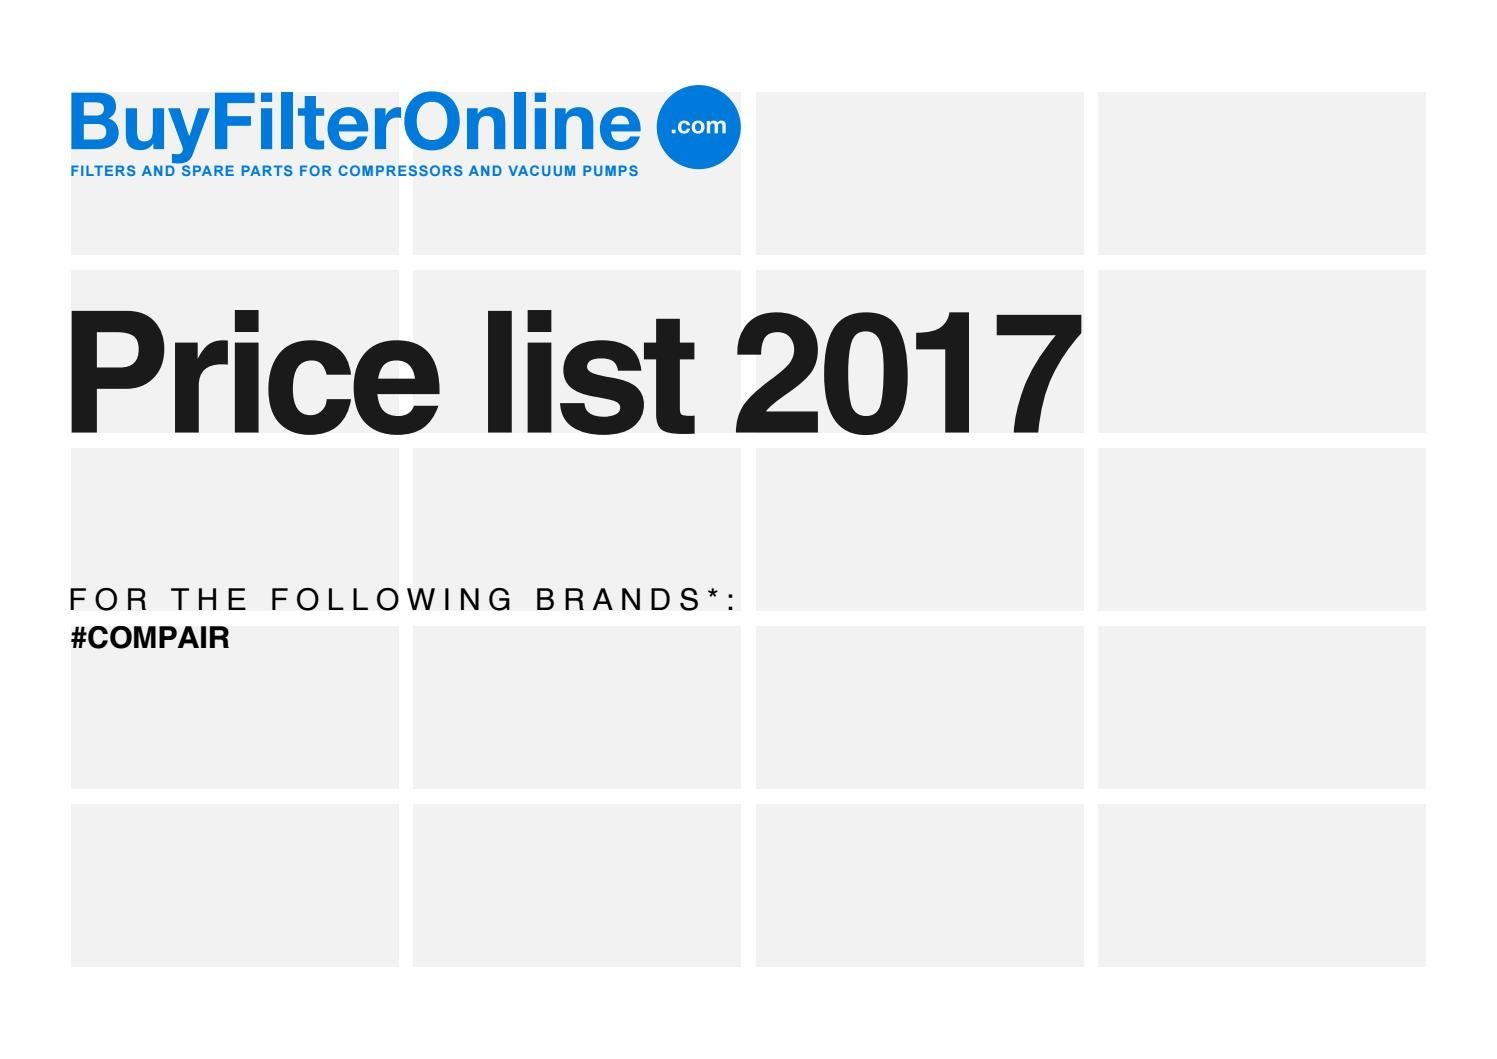 Buyfilteronline Com Filters For Compressors Price List